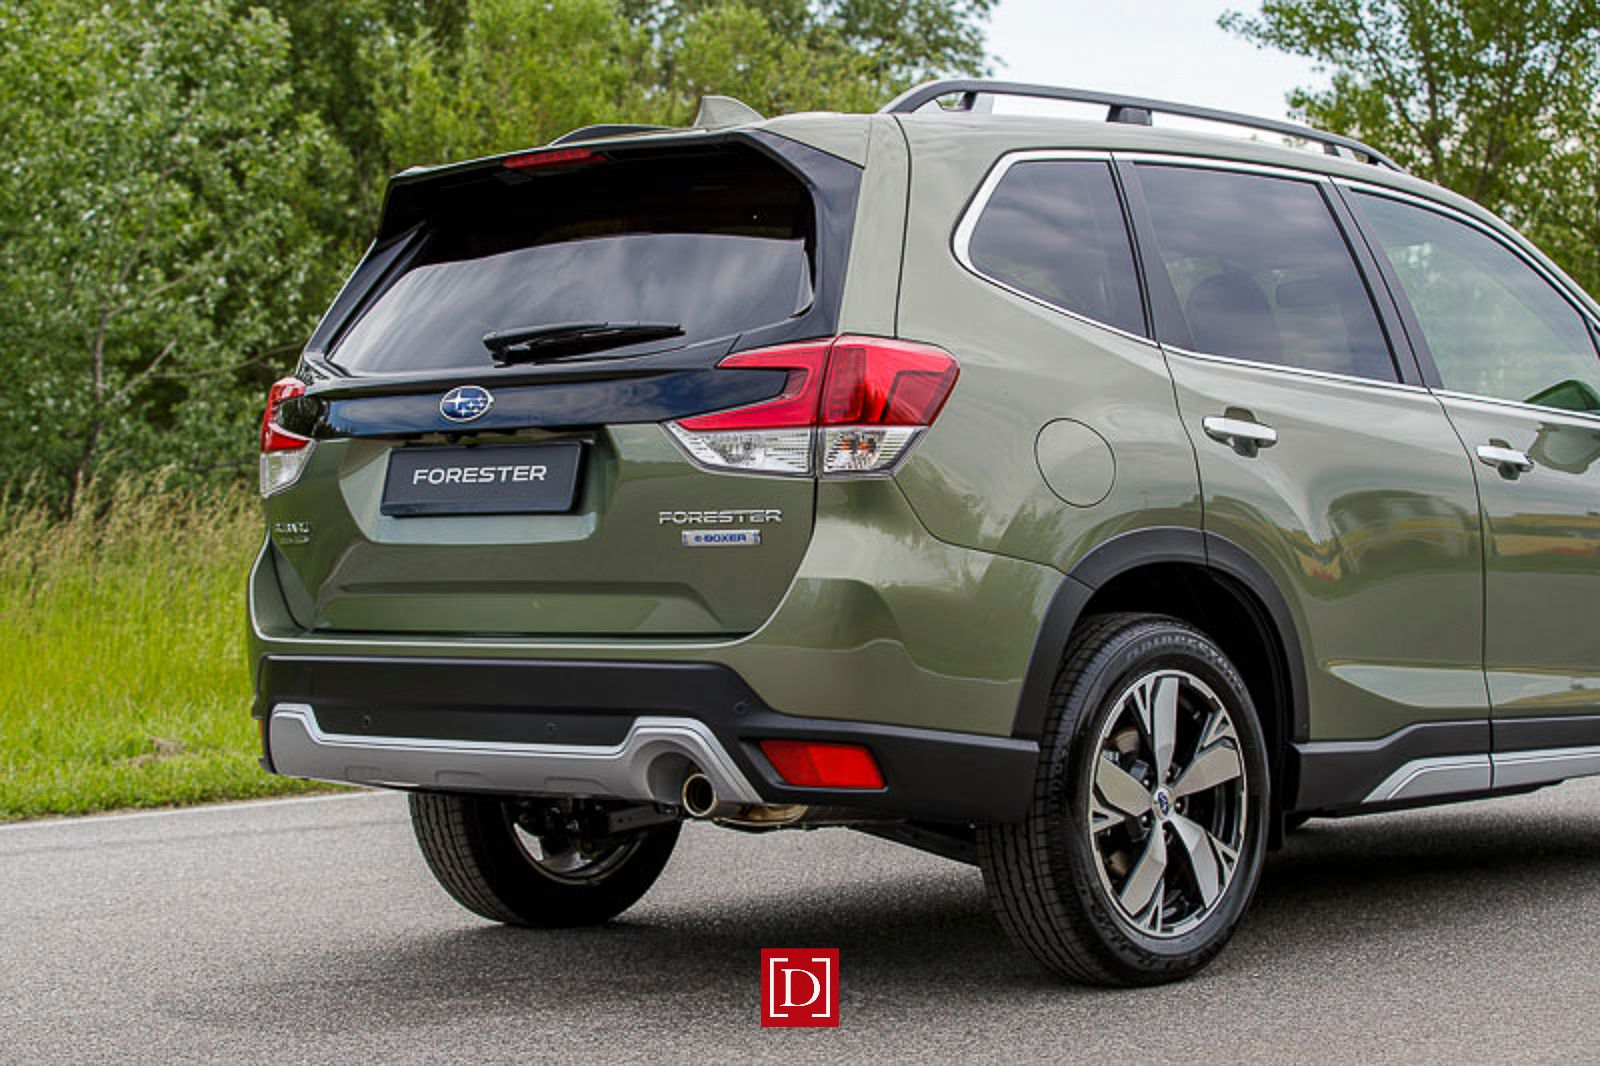 forester-e-boxer_low-032-22807